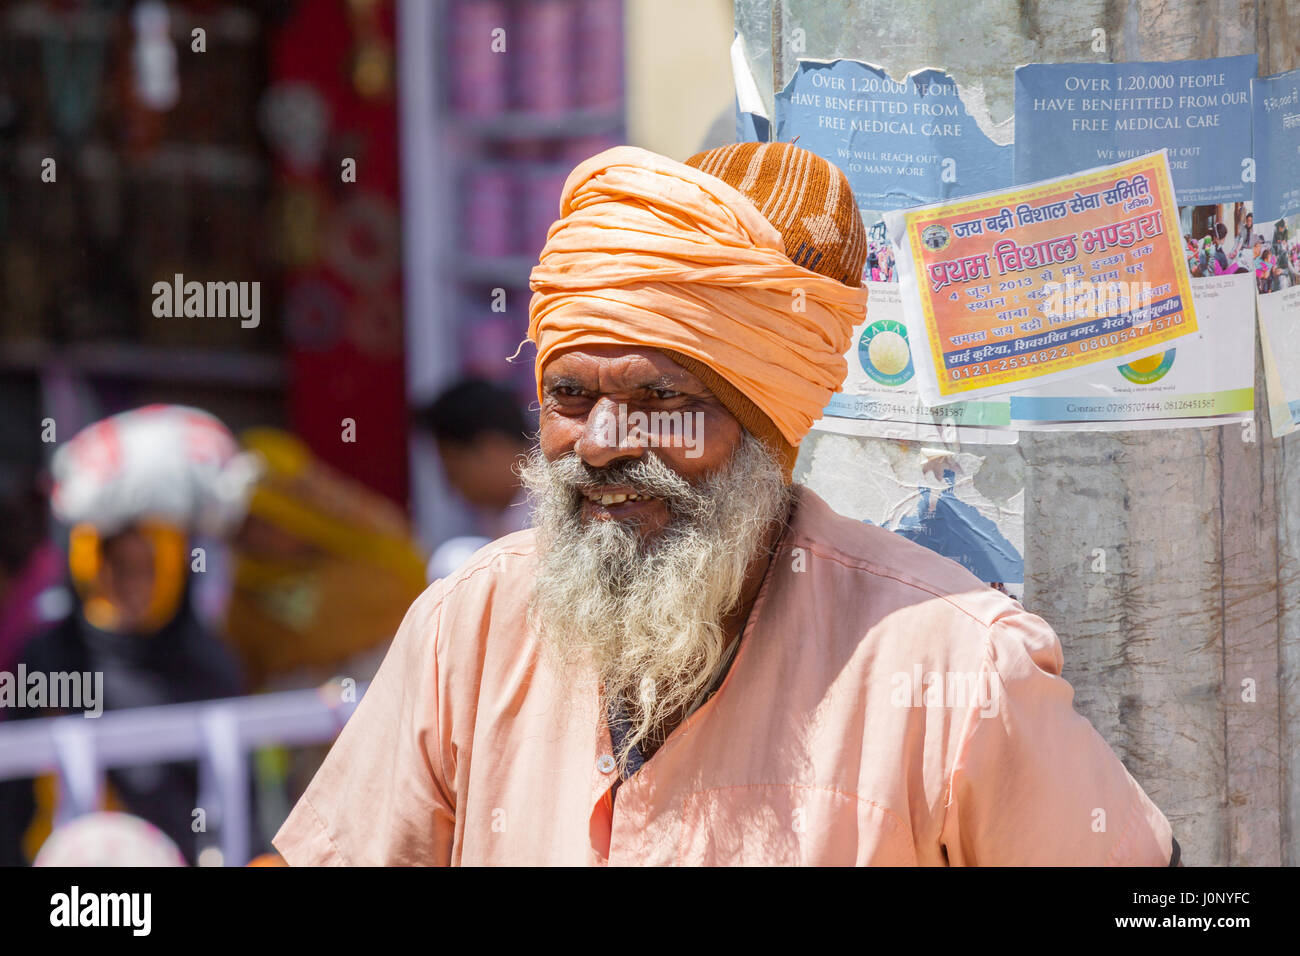 BADRINATH - INDIA, JUNE 5th - An old sadhu at the temple of Badarinath in North India on June 5th 2013 - Stock Image